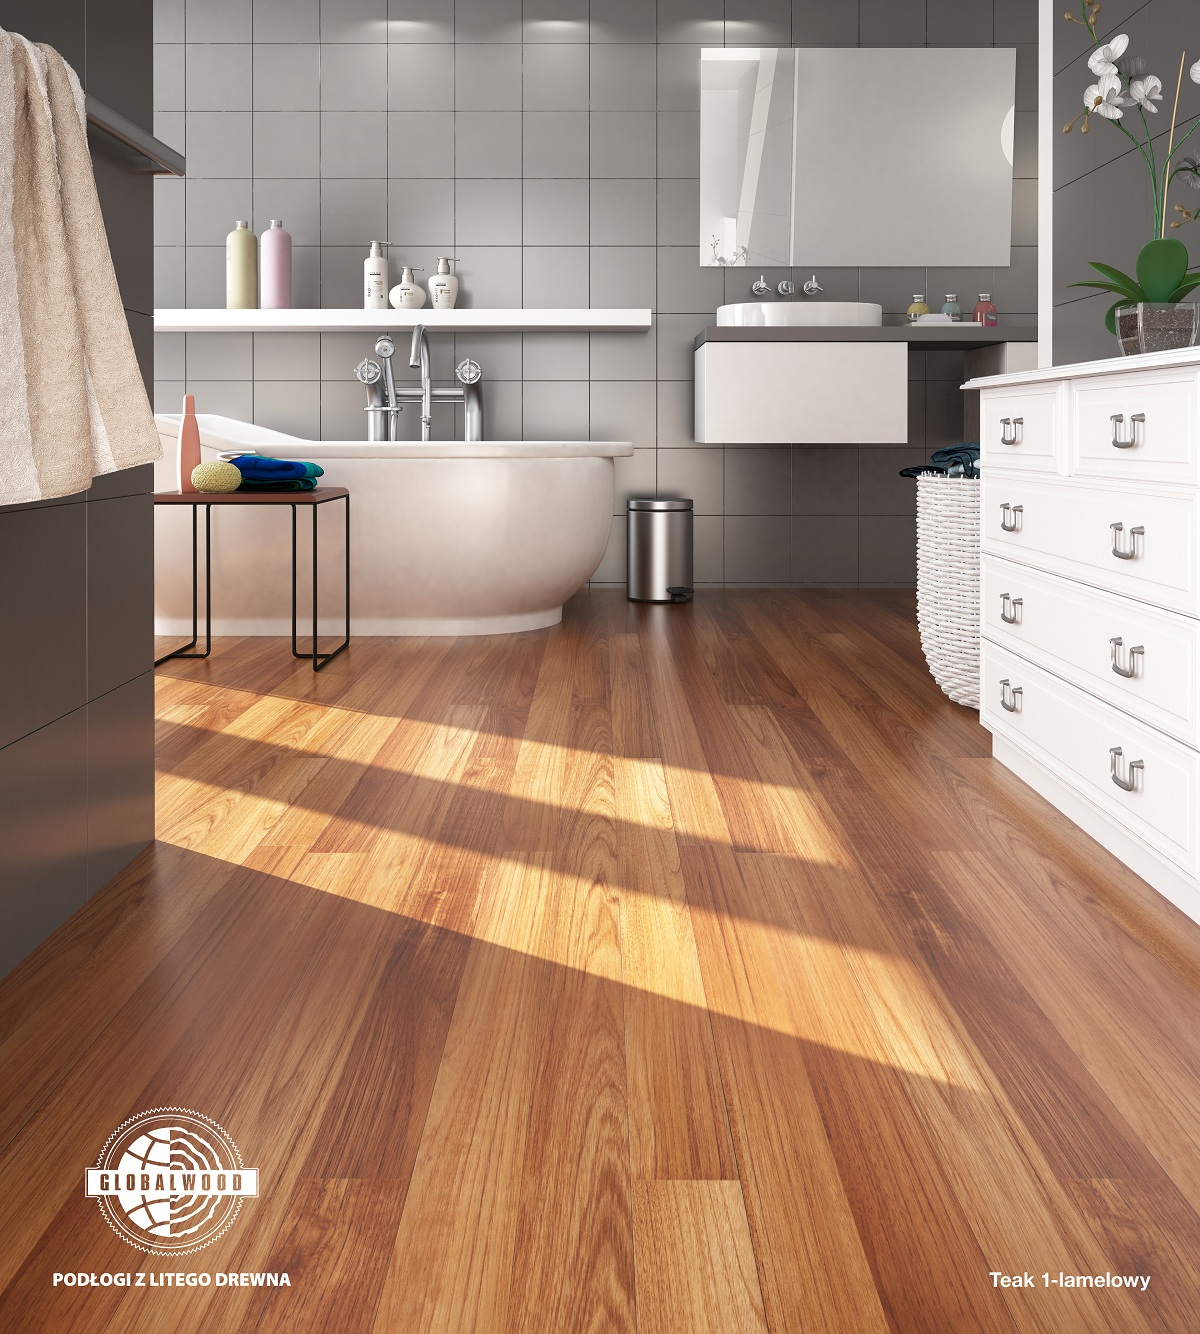 TEAK 1 strip wood floor